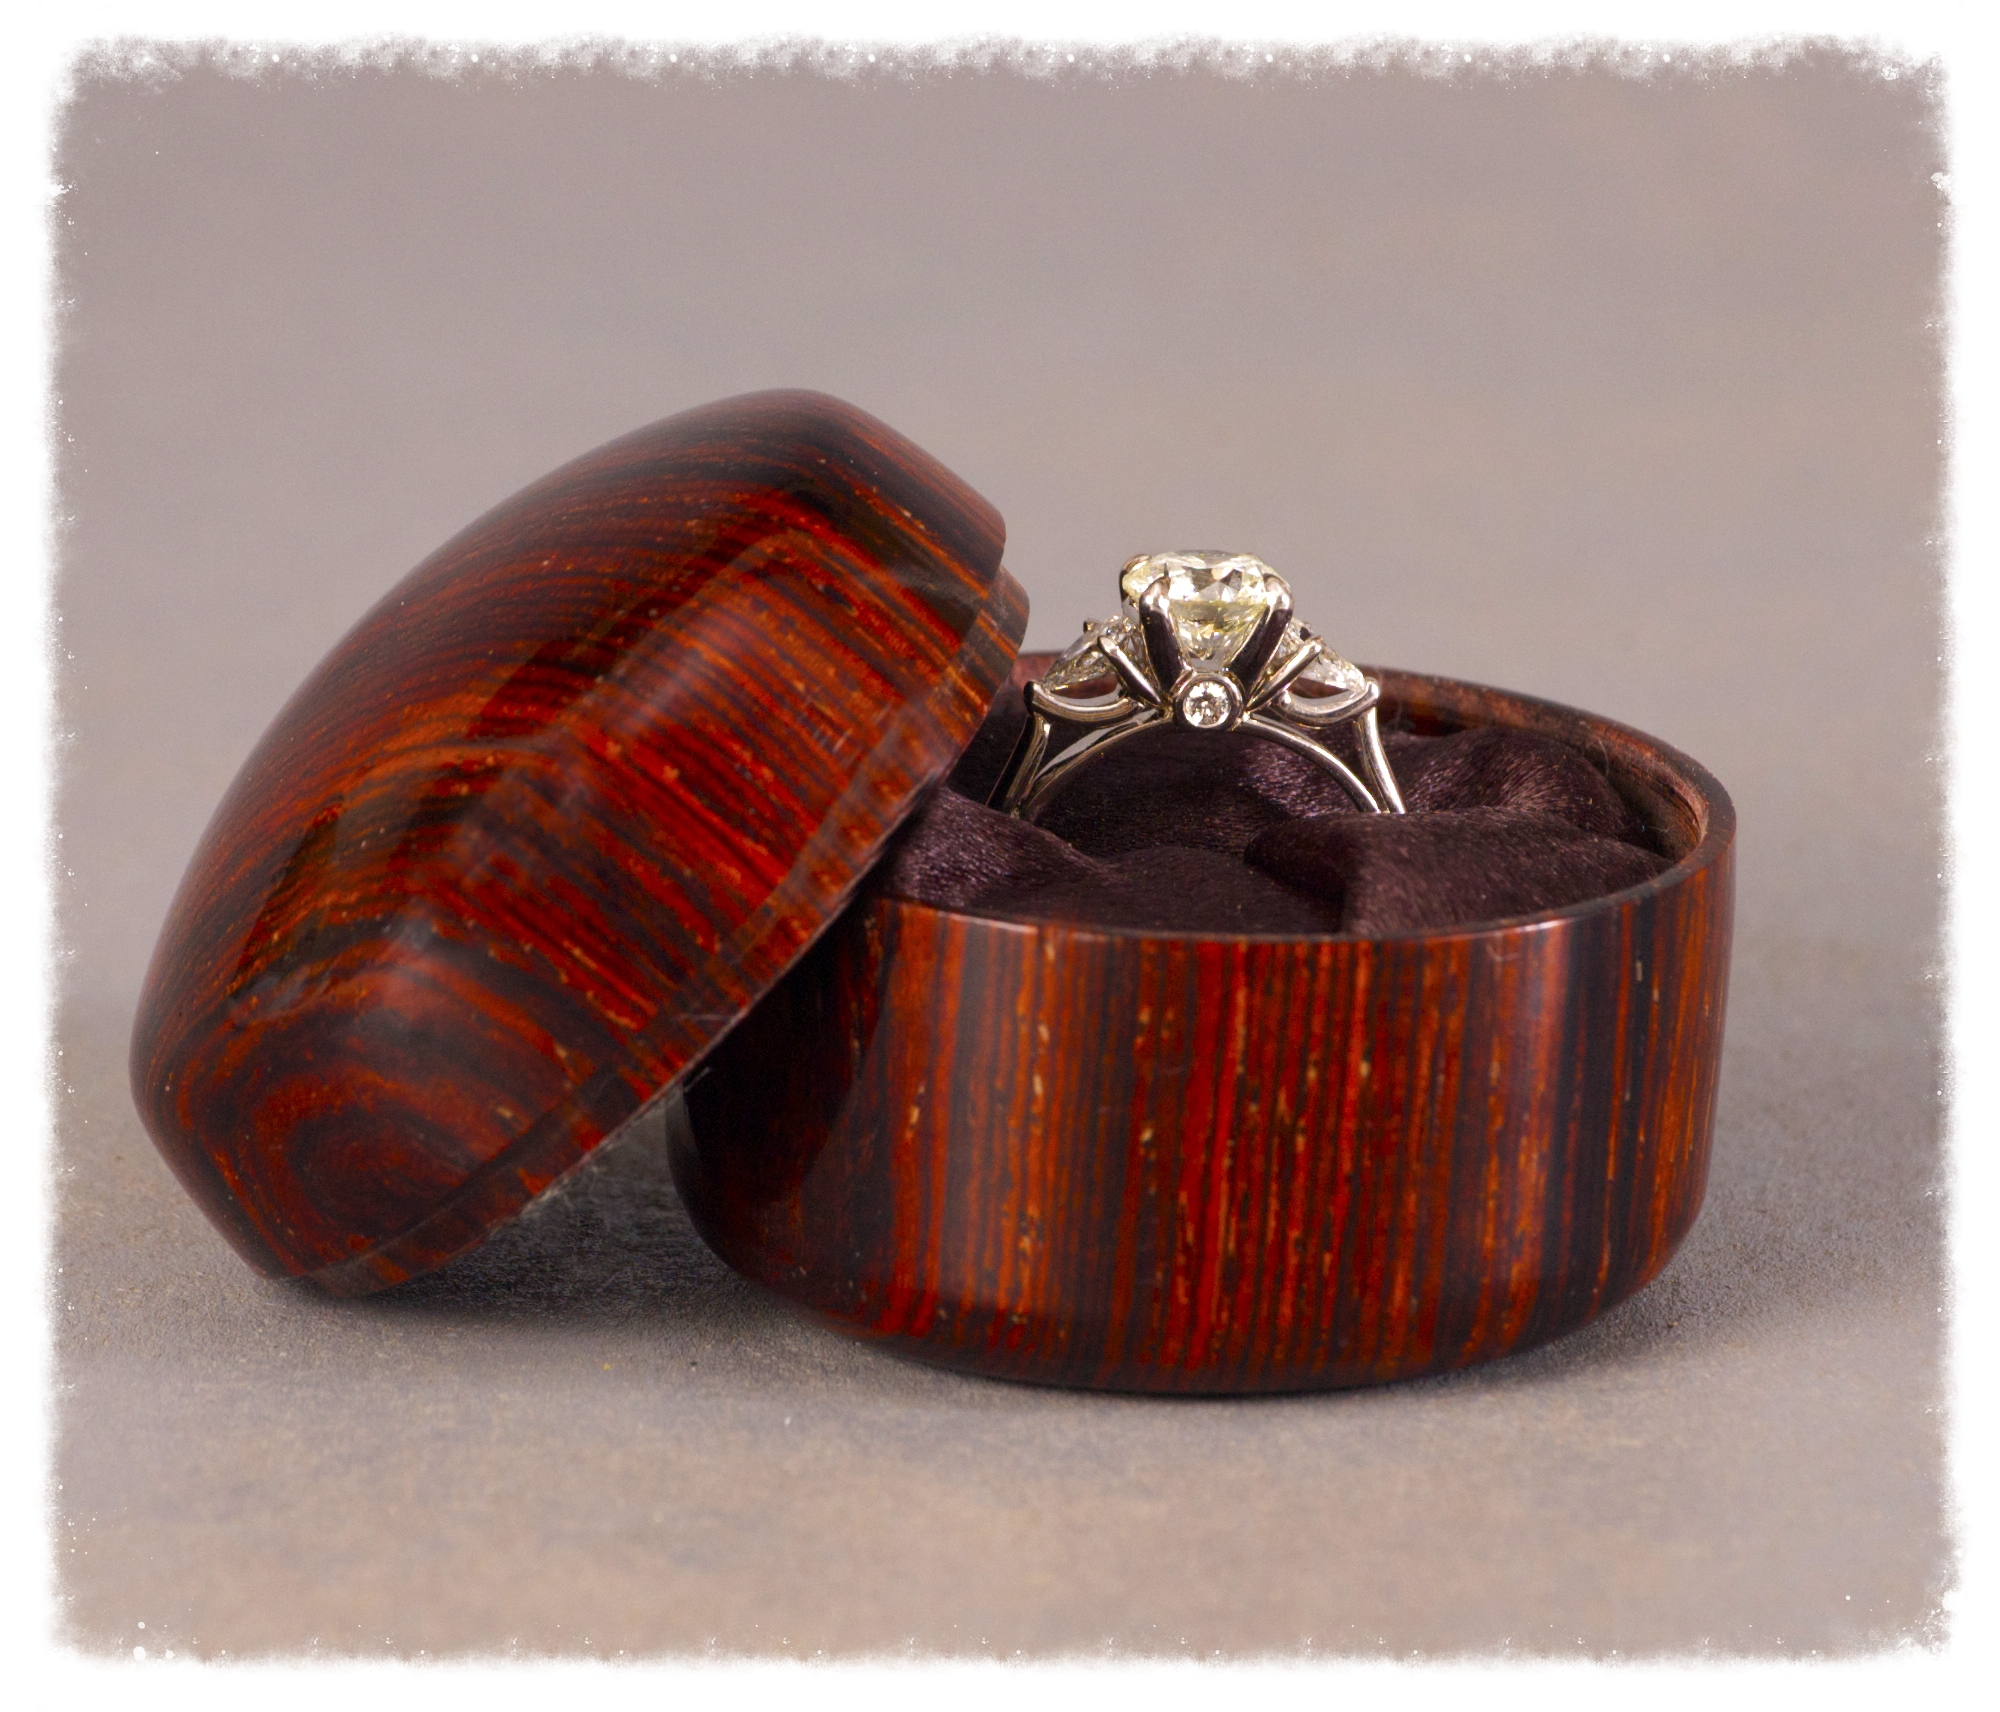 Cocobolo engagement ring box